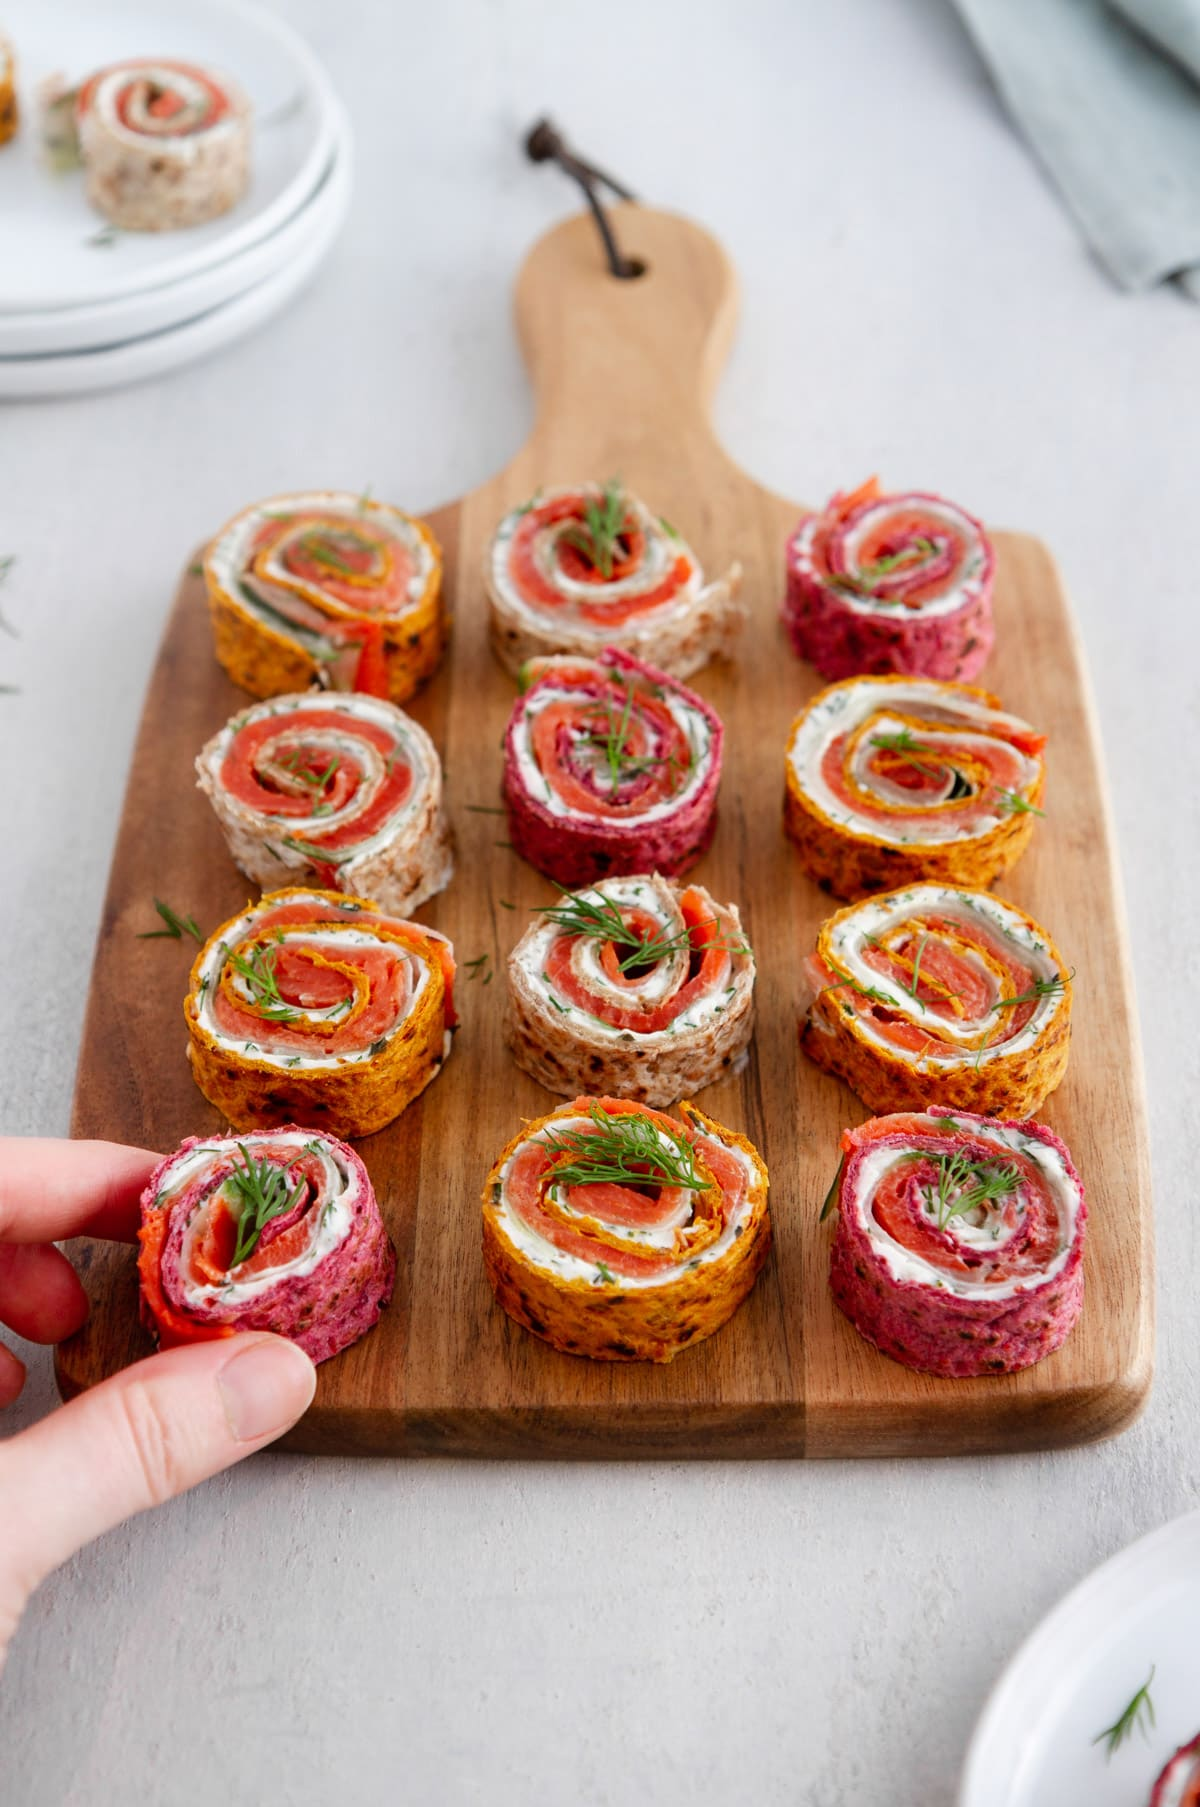 a hand grabbing a salmon pinwheel from a cutting board